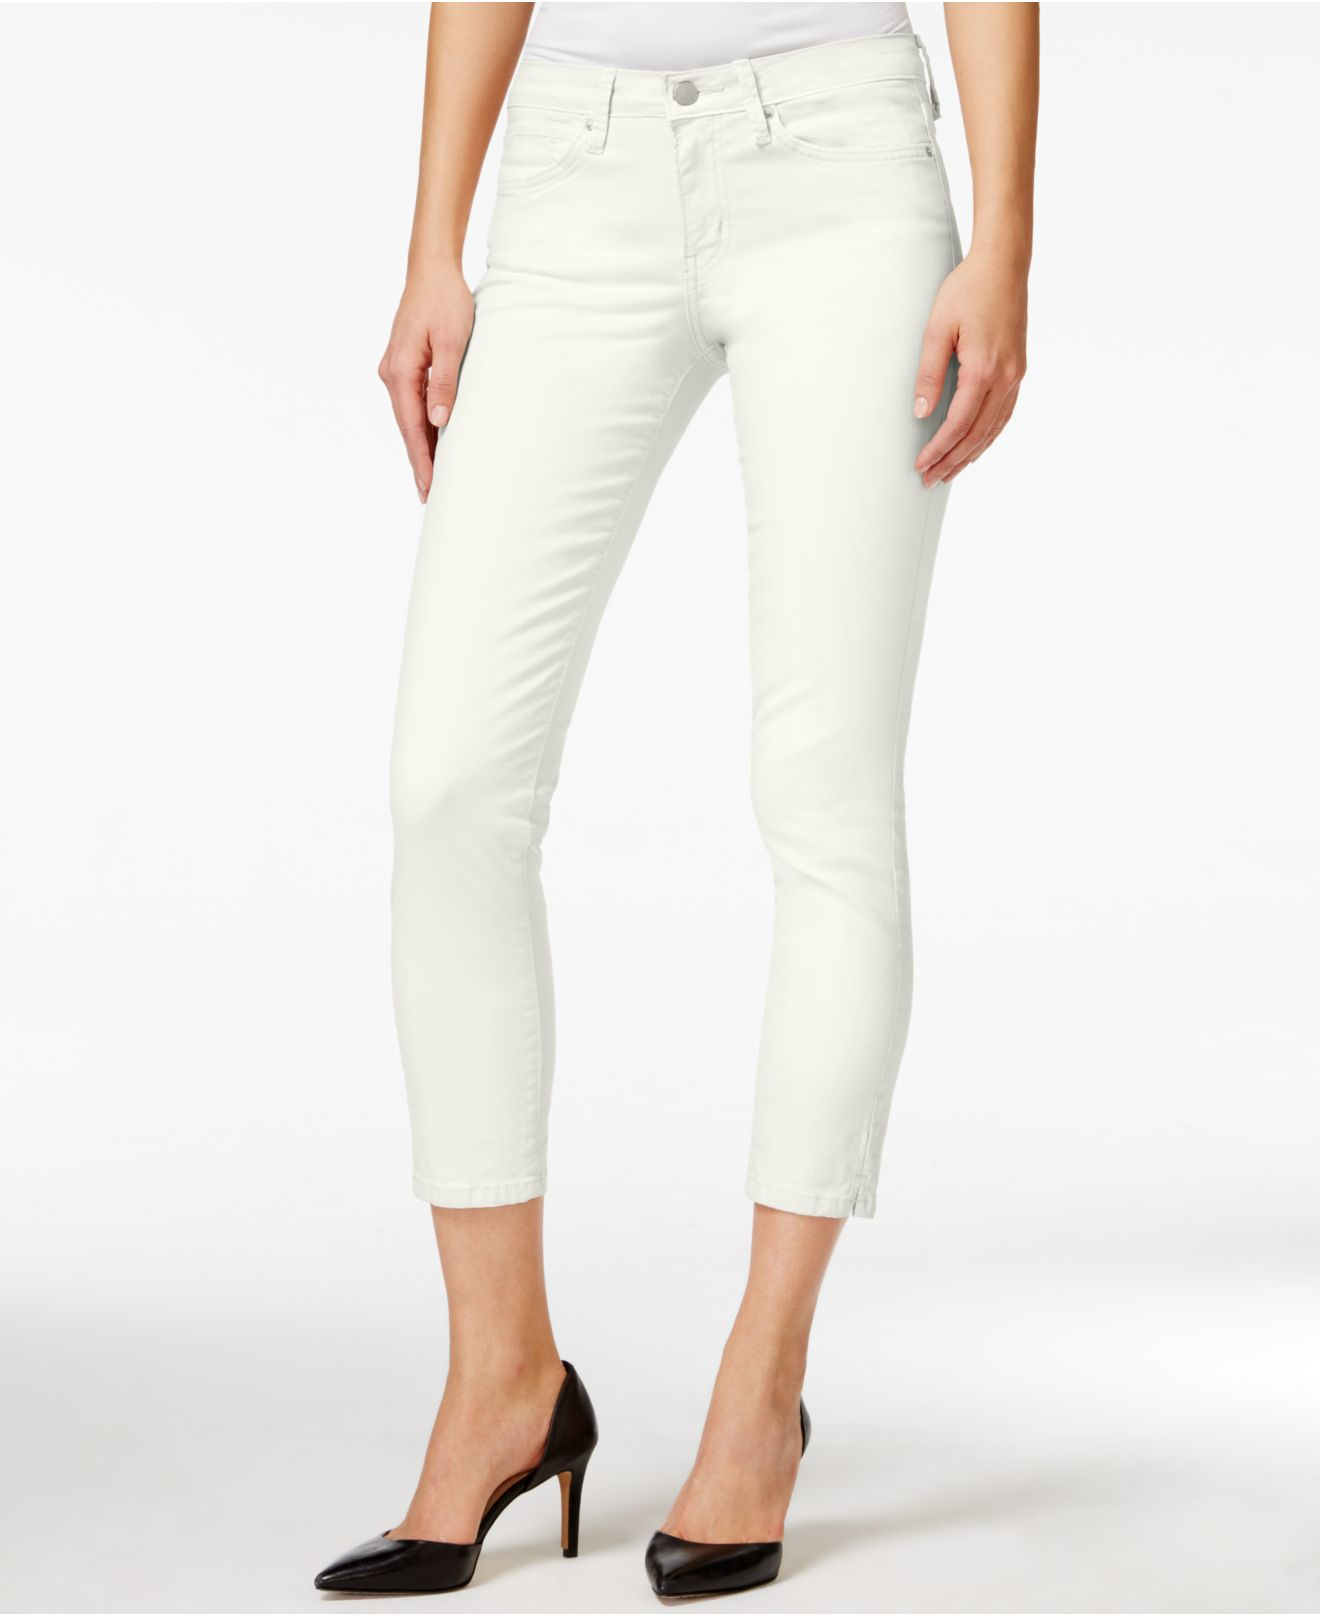 Cropped White Skinny Jeans - Xtellar Jeans